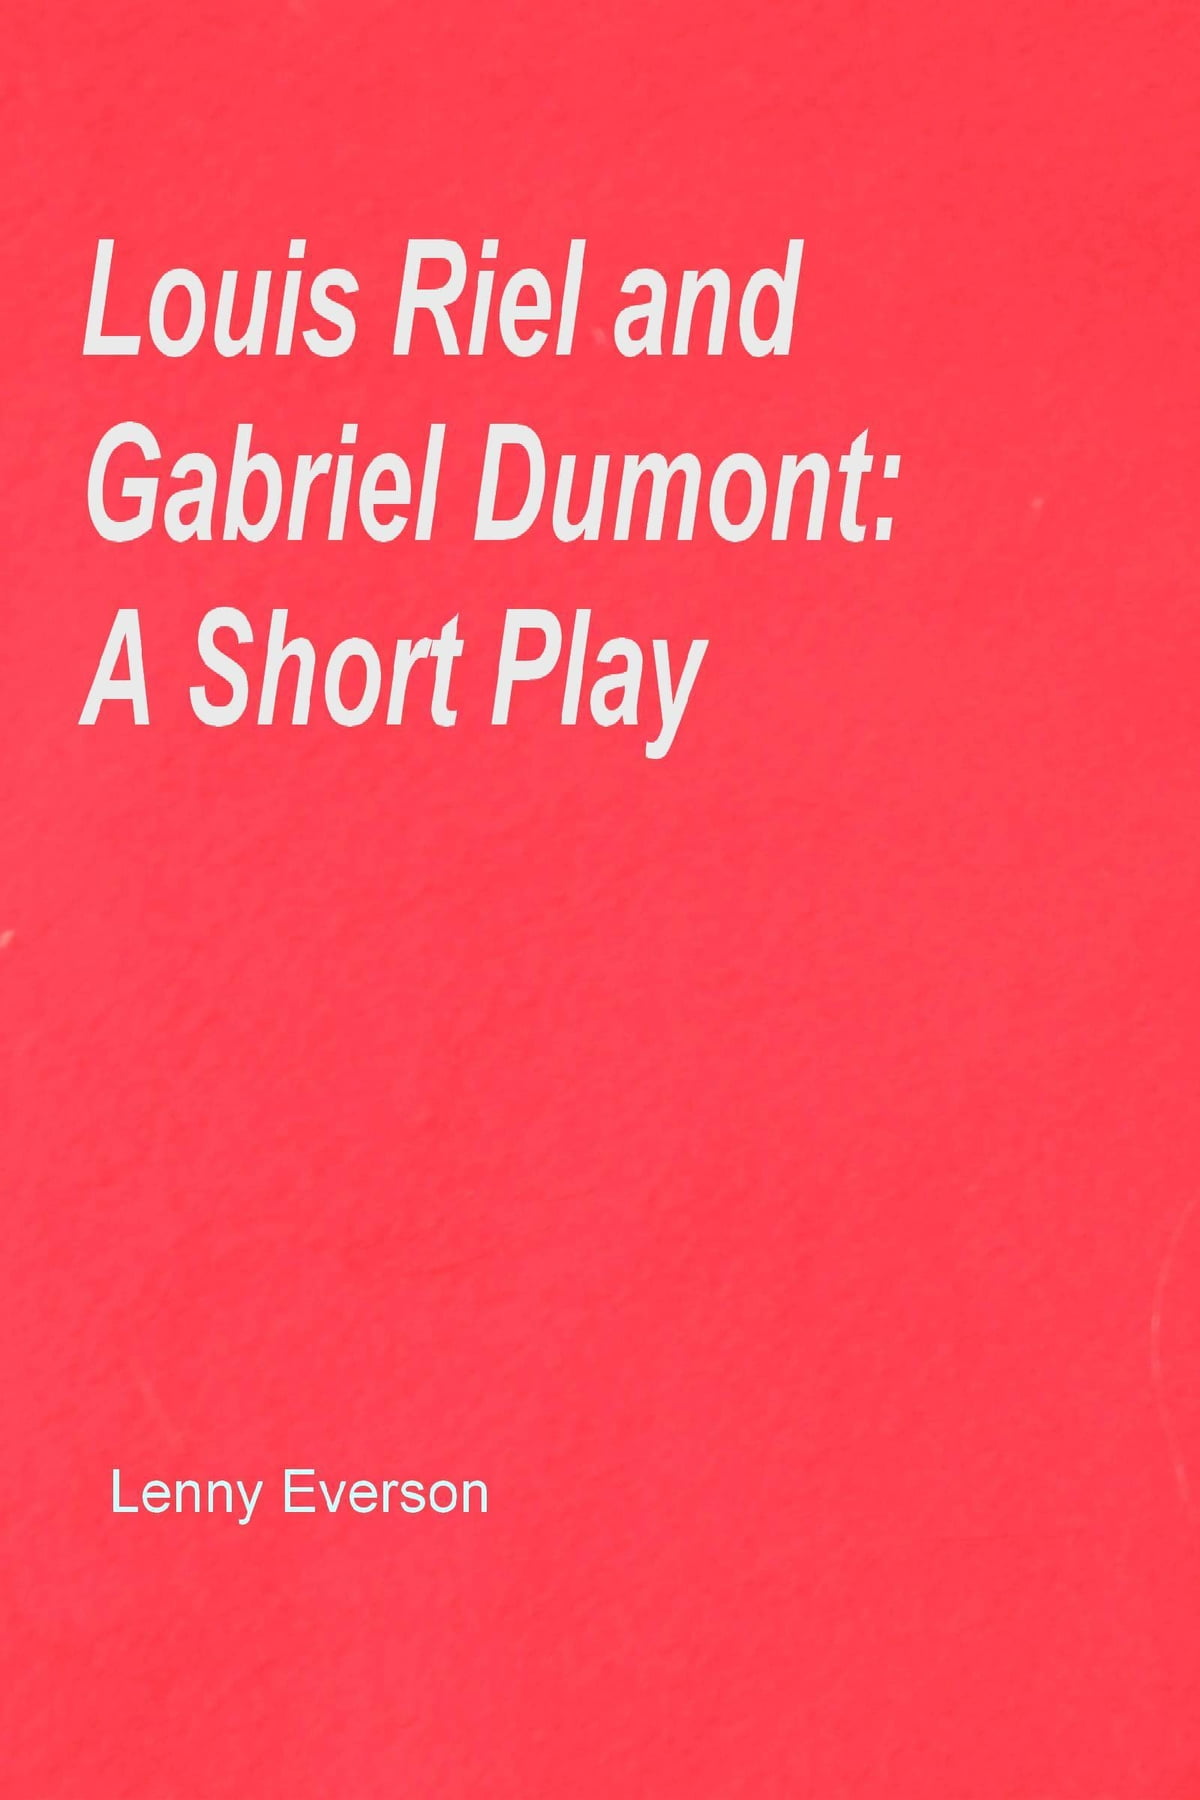 gabriel dumont and louis riel relationship poems